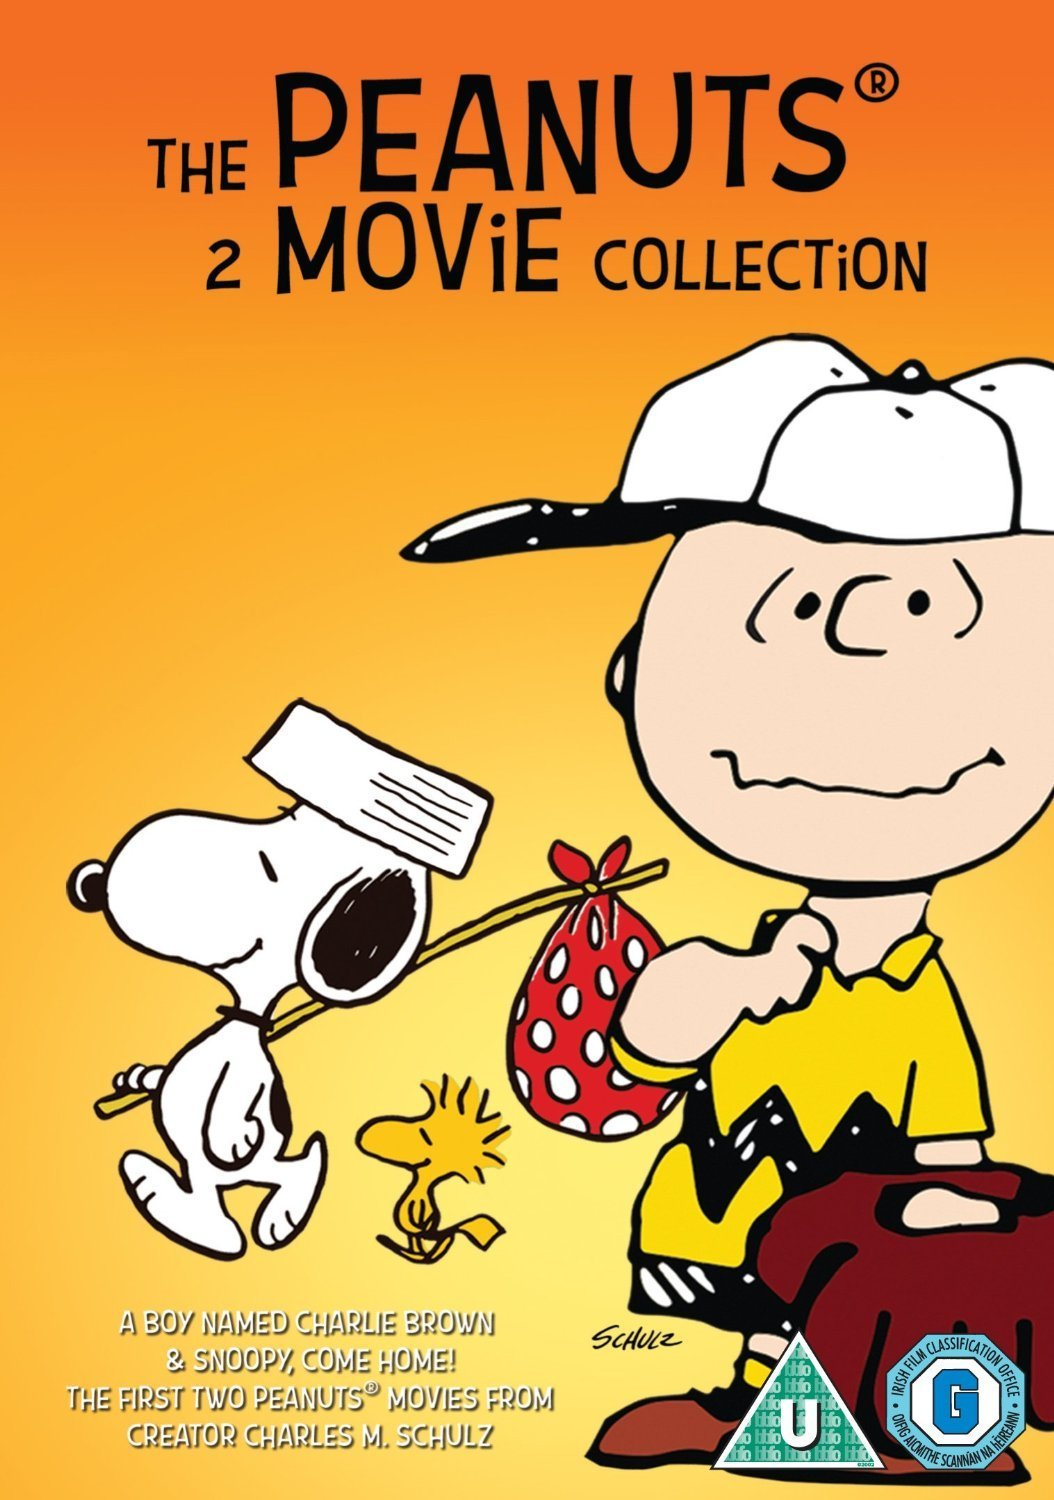 c3d730f6397303 The Peanuts - 2 Movie Collection  Snoopy Come Home   A Boy Named Charlie  Brown DVD  Amazon.co.uk  Bill Melendez  DVD   Blu-ray